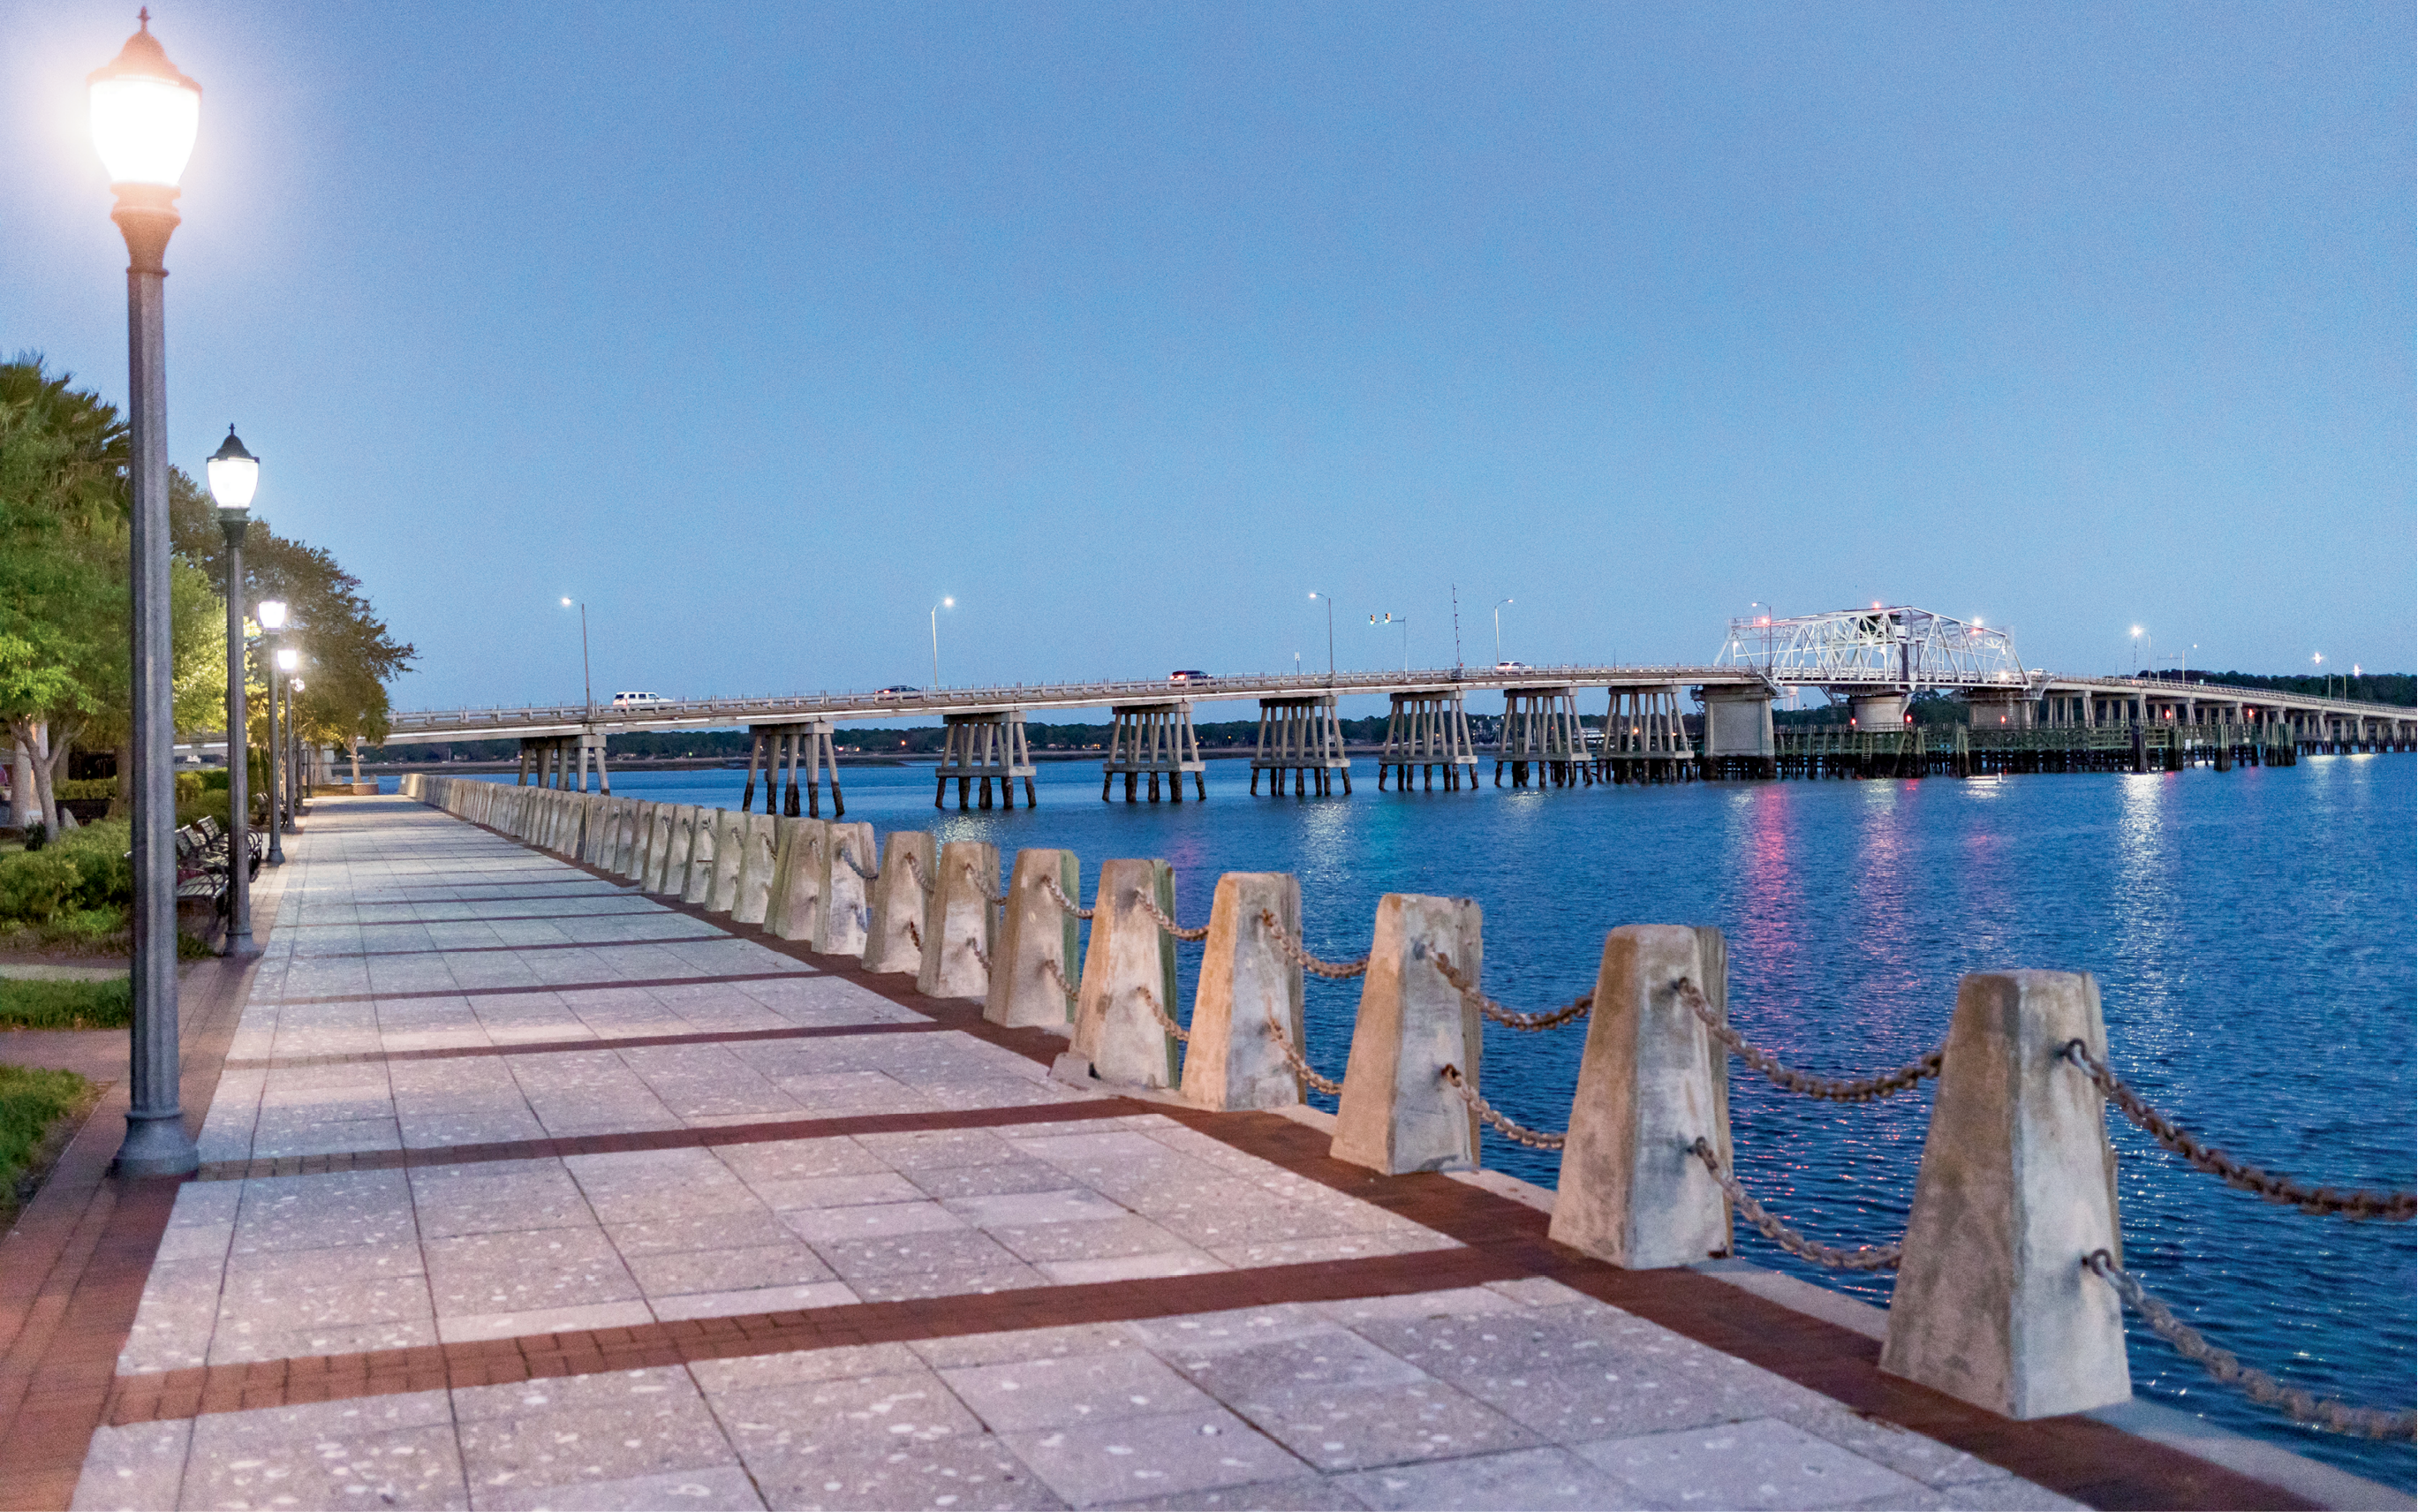 Public Spaces, Protected Views: The promenade at the Henry C. Chambers Waterfront Park, downtown on the Beaufort River